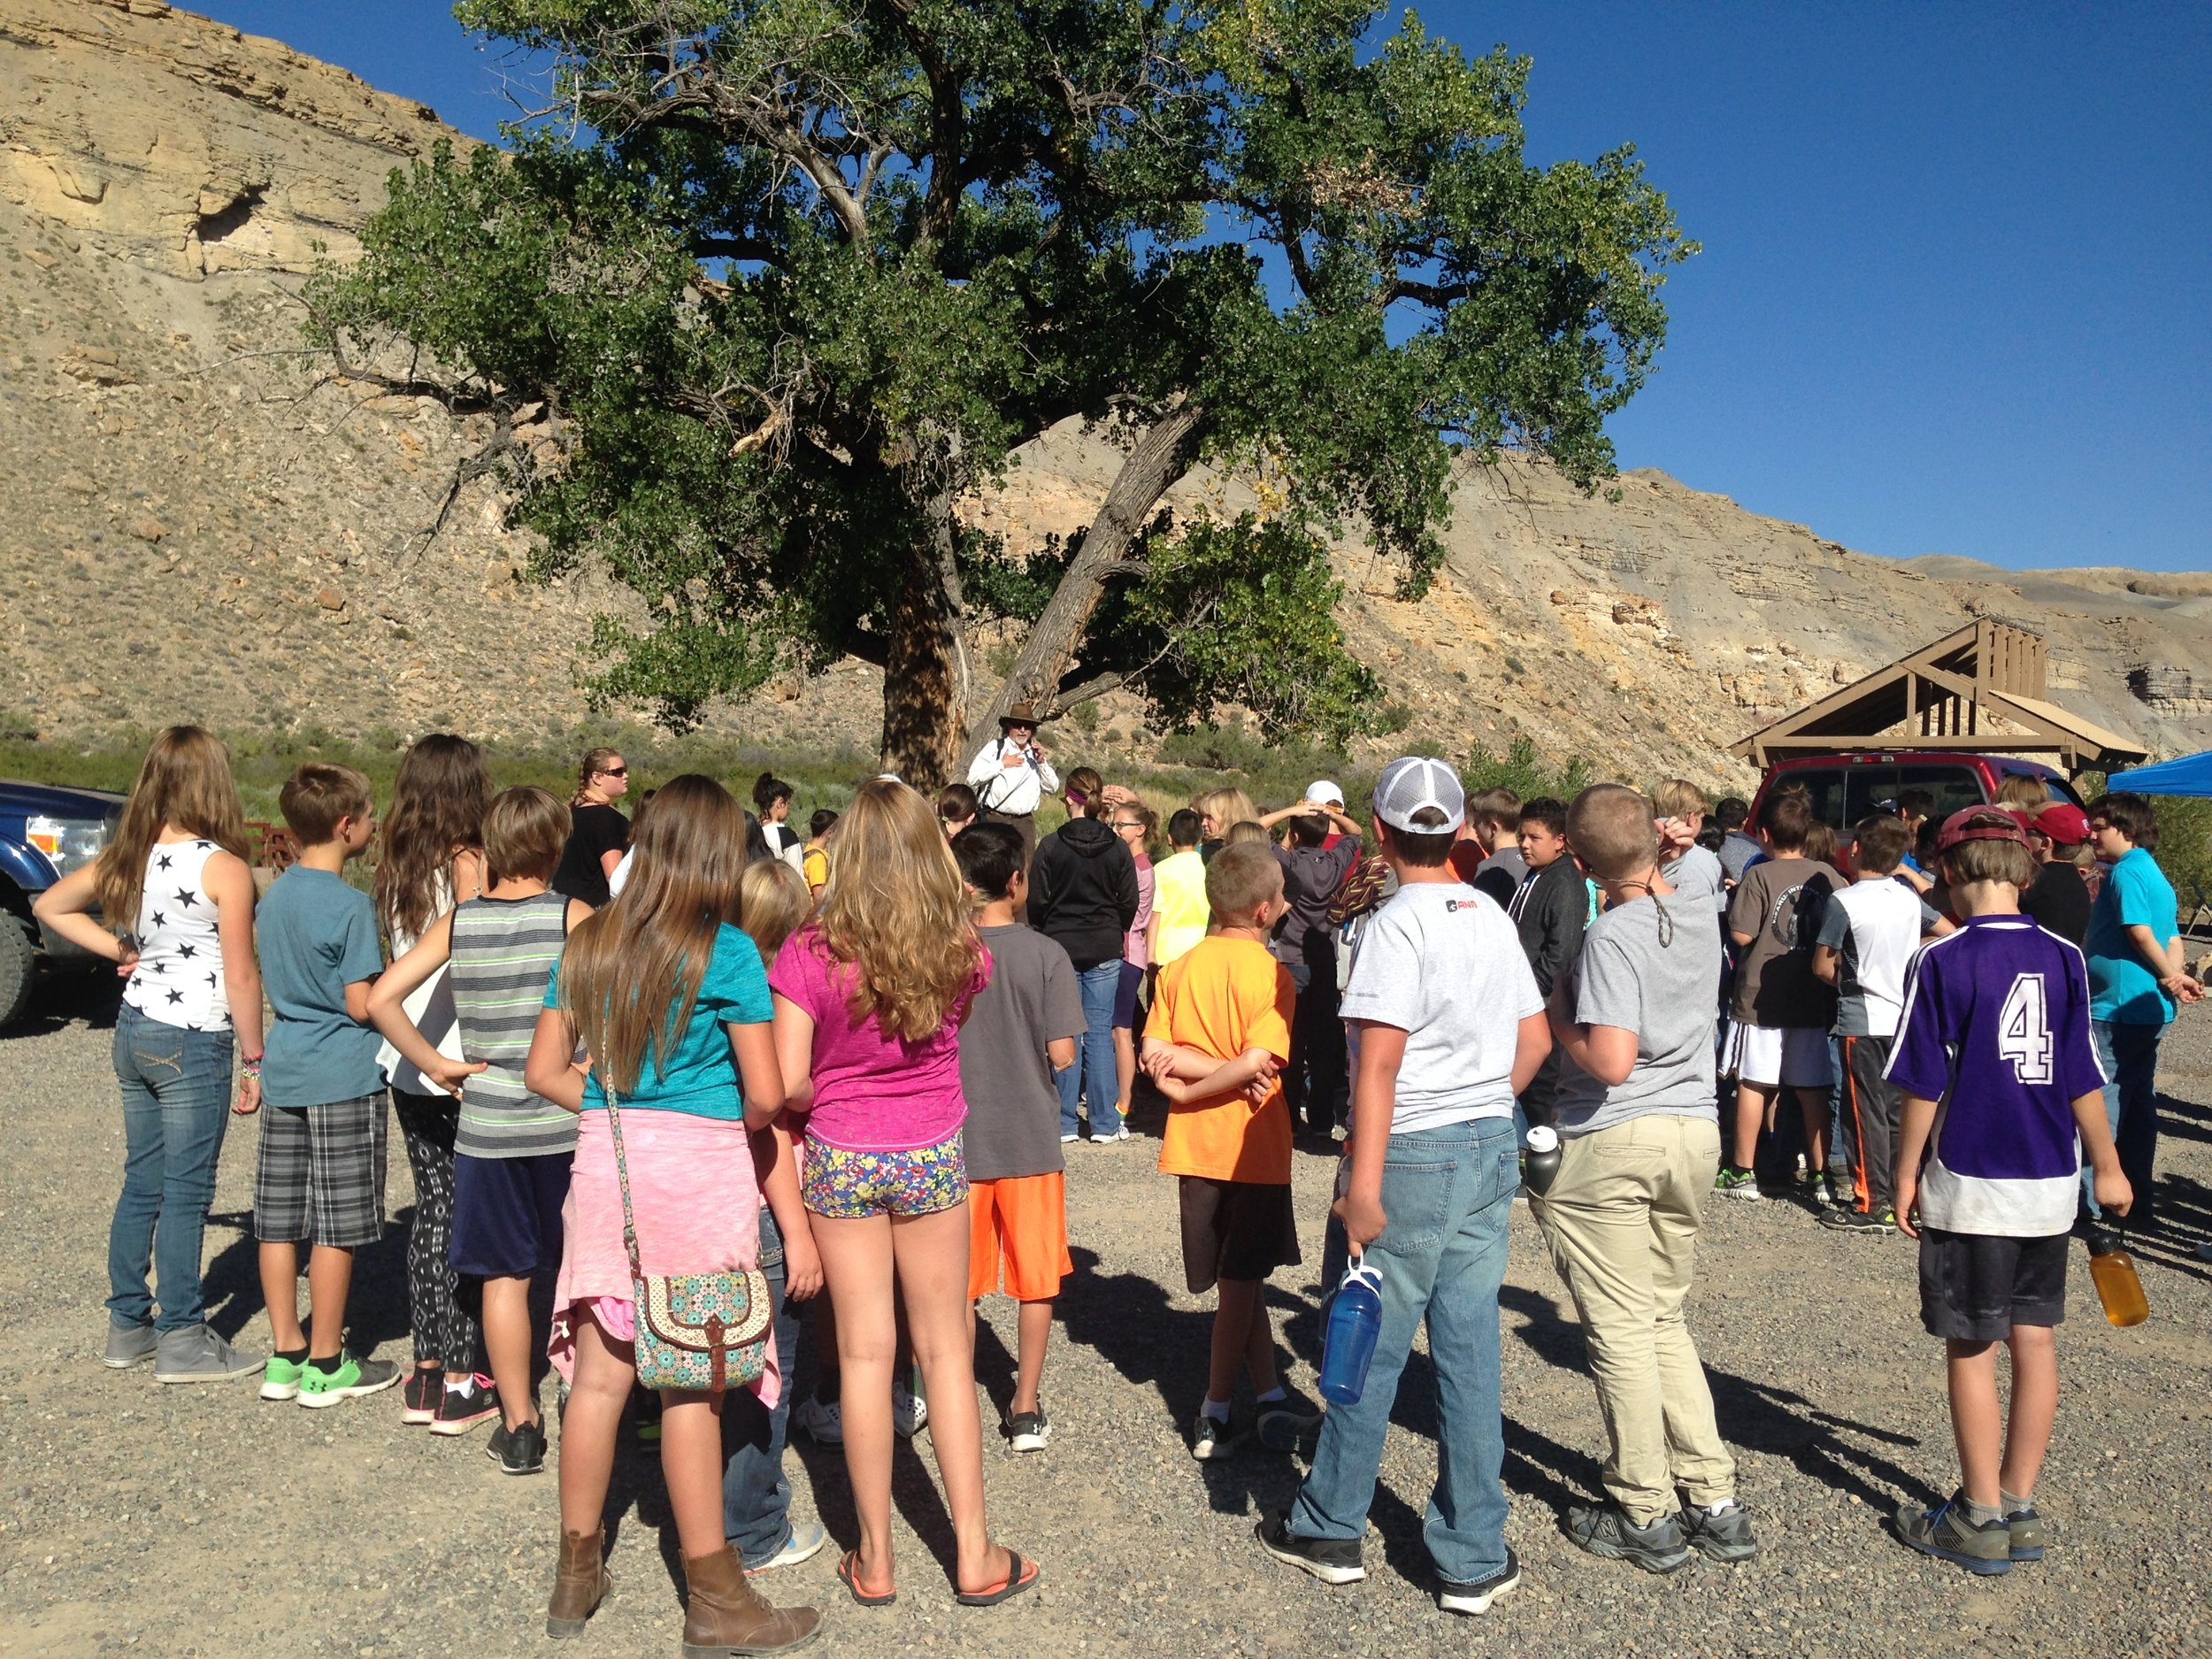 6th grade students get ready for fun and learning at the  Cottonwood Grove Campground .